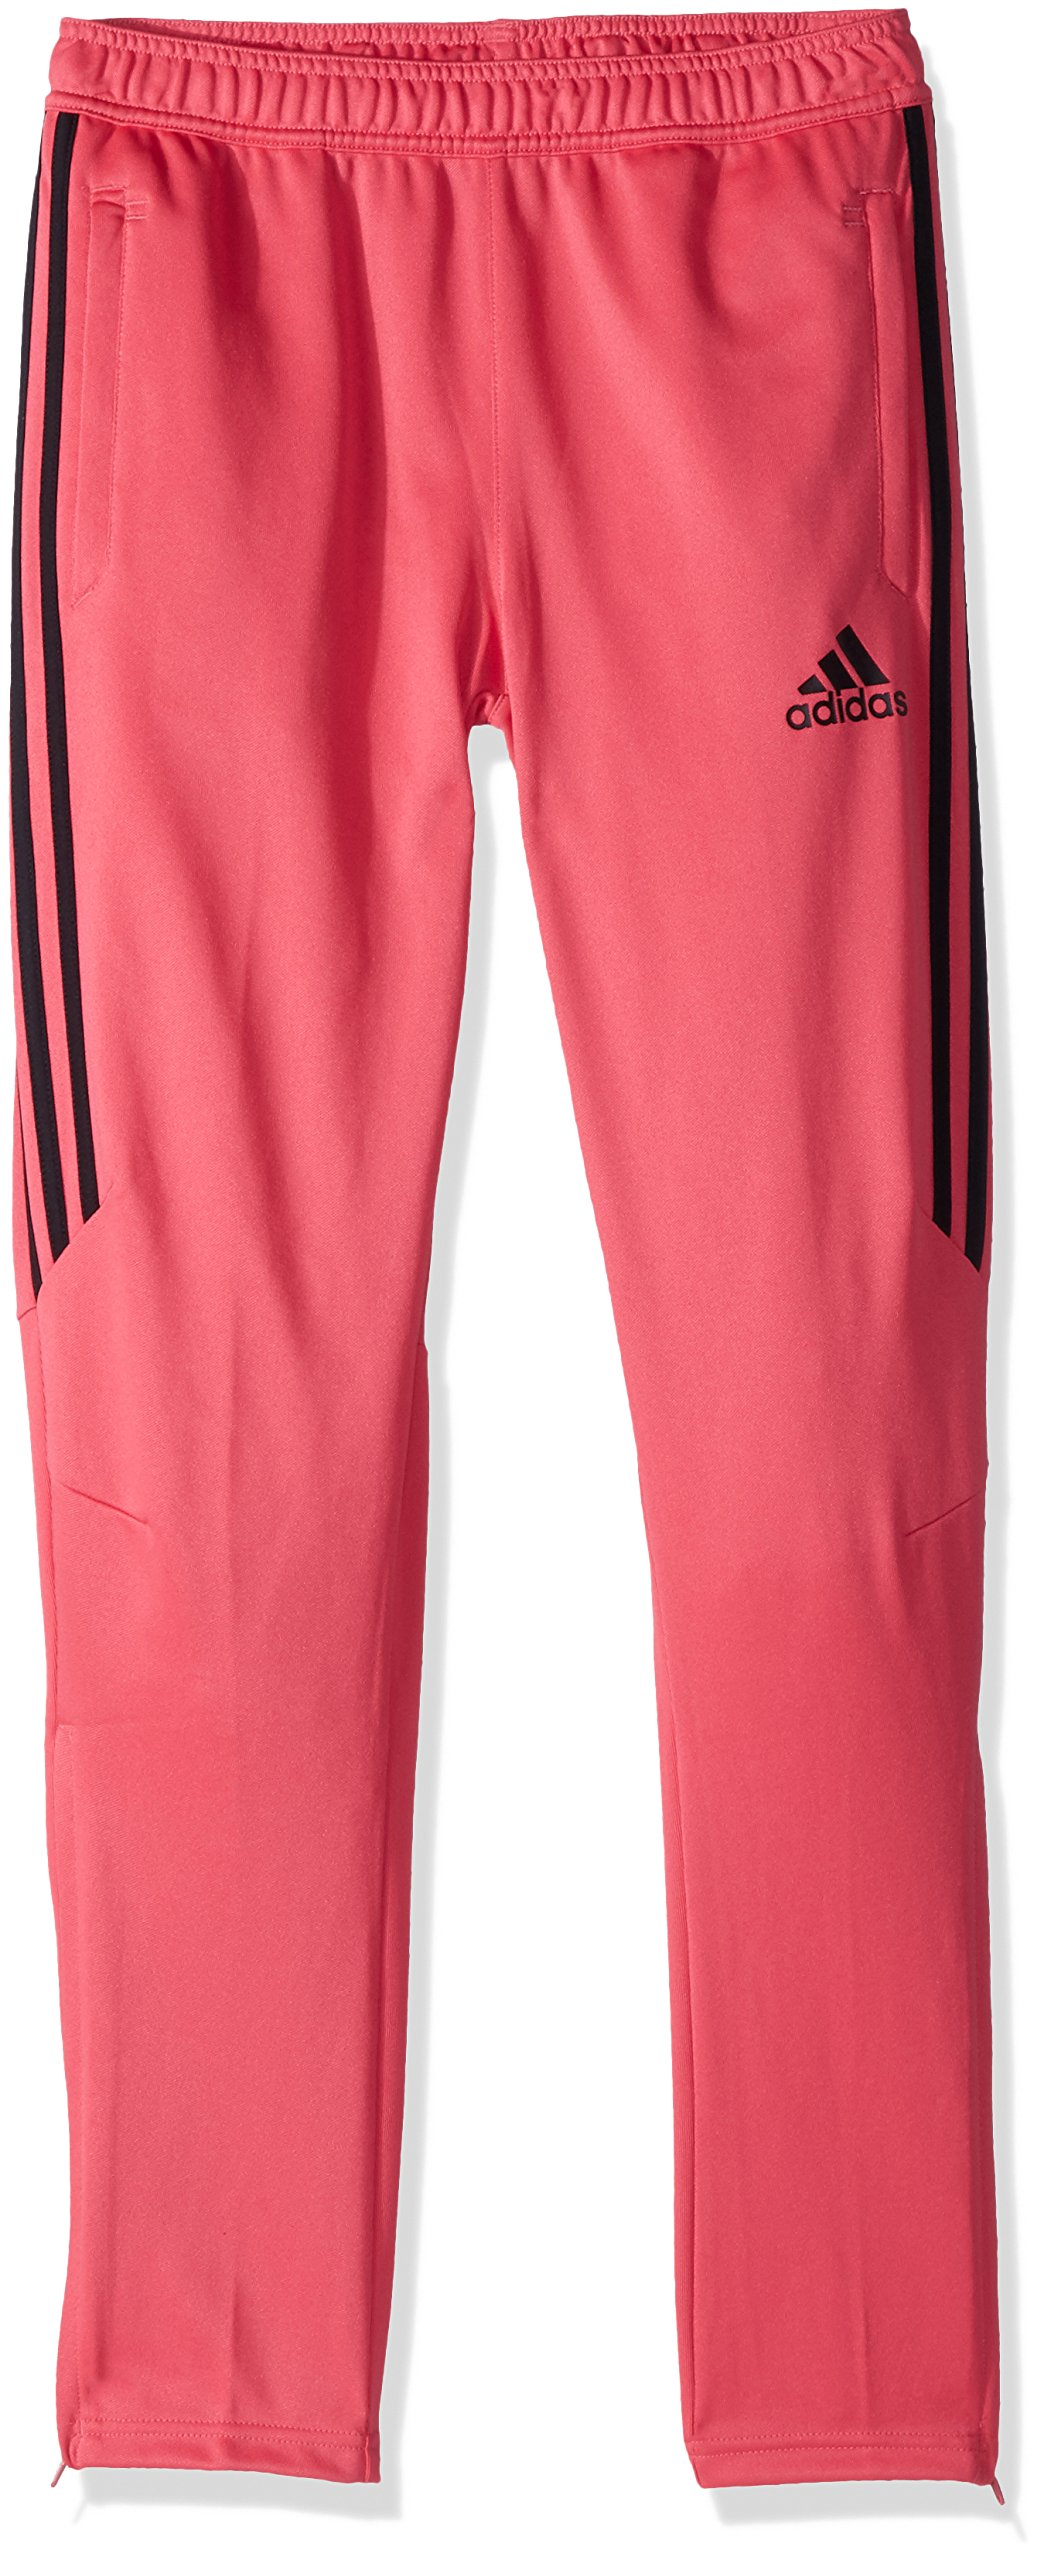 adidas Youth Soccer Tiro 17 Training Pants, Real Pink/Black, X-Small